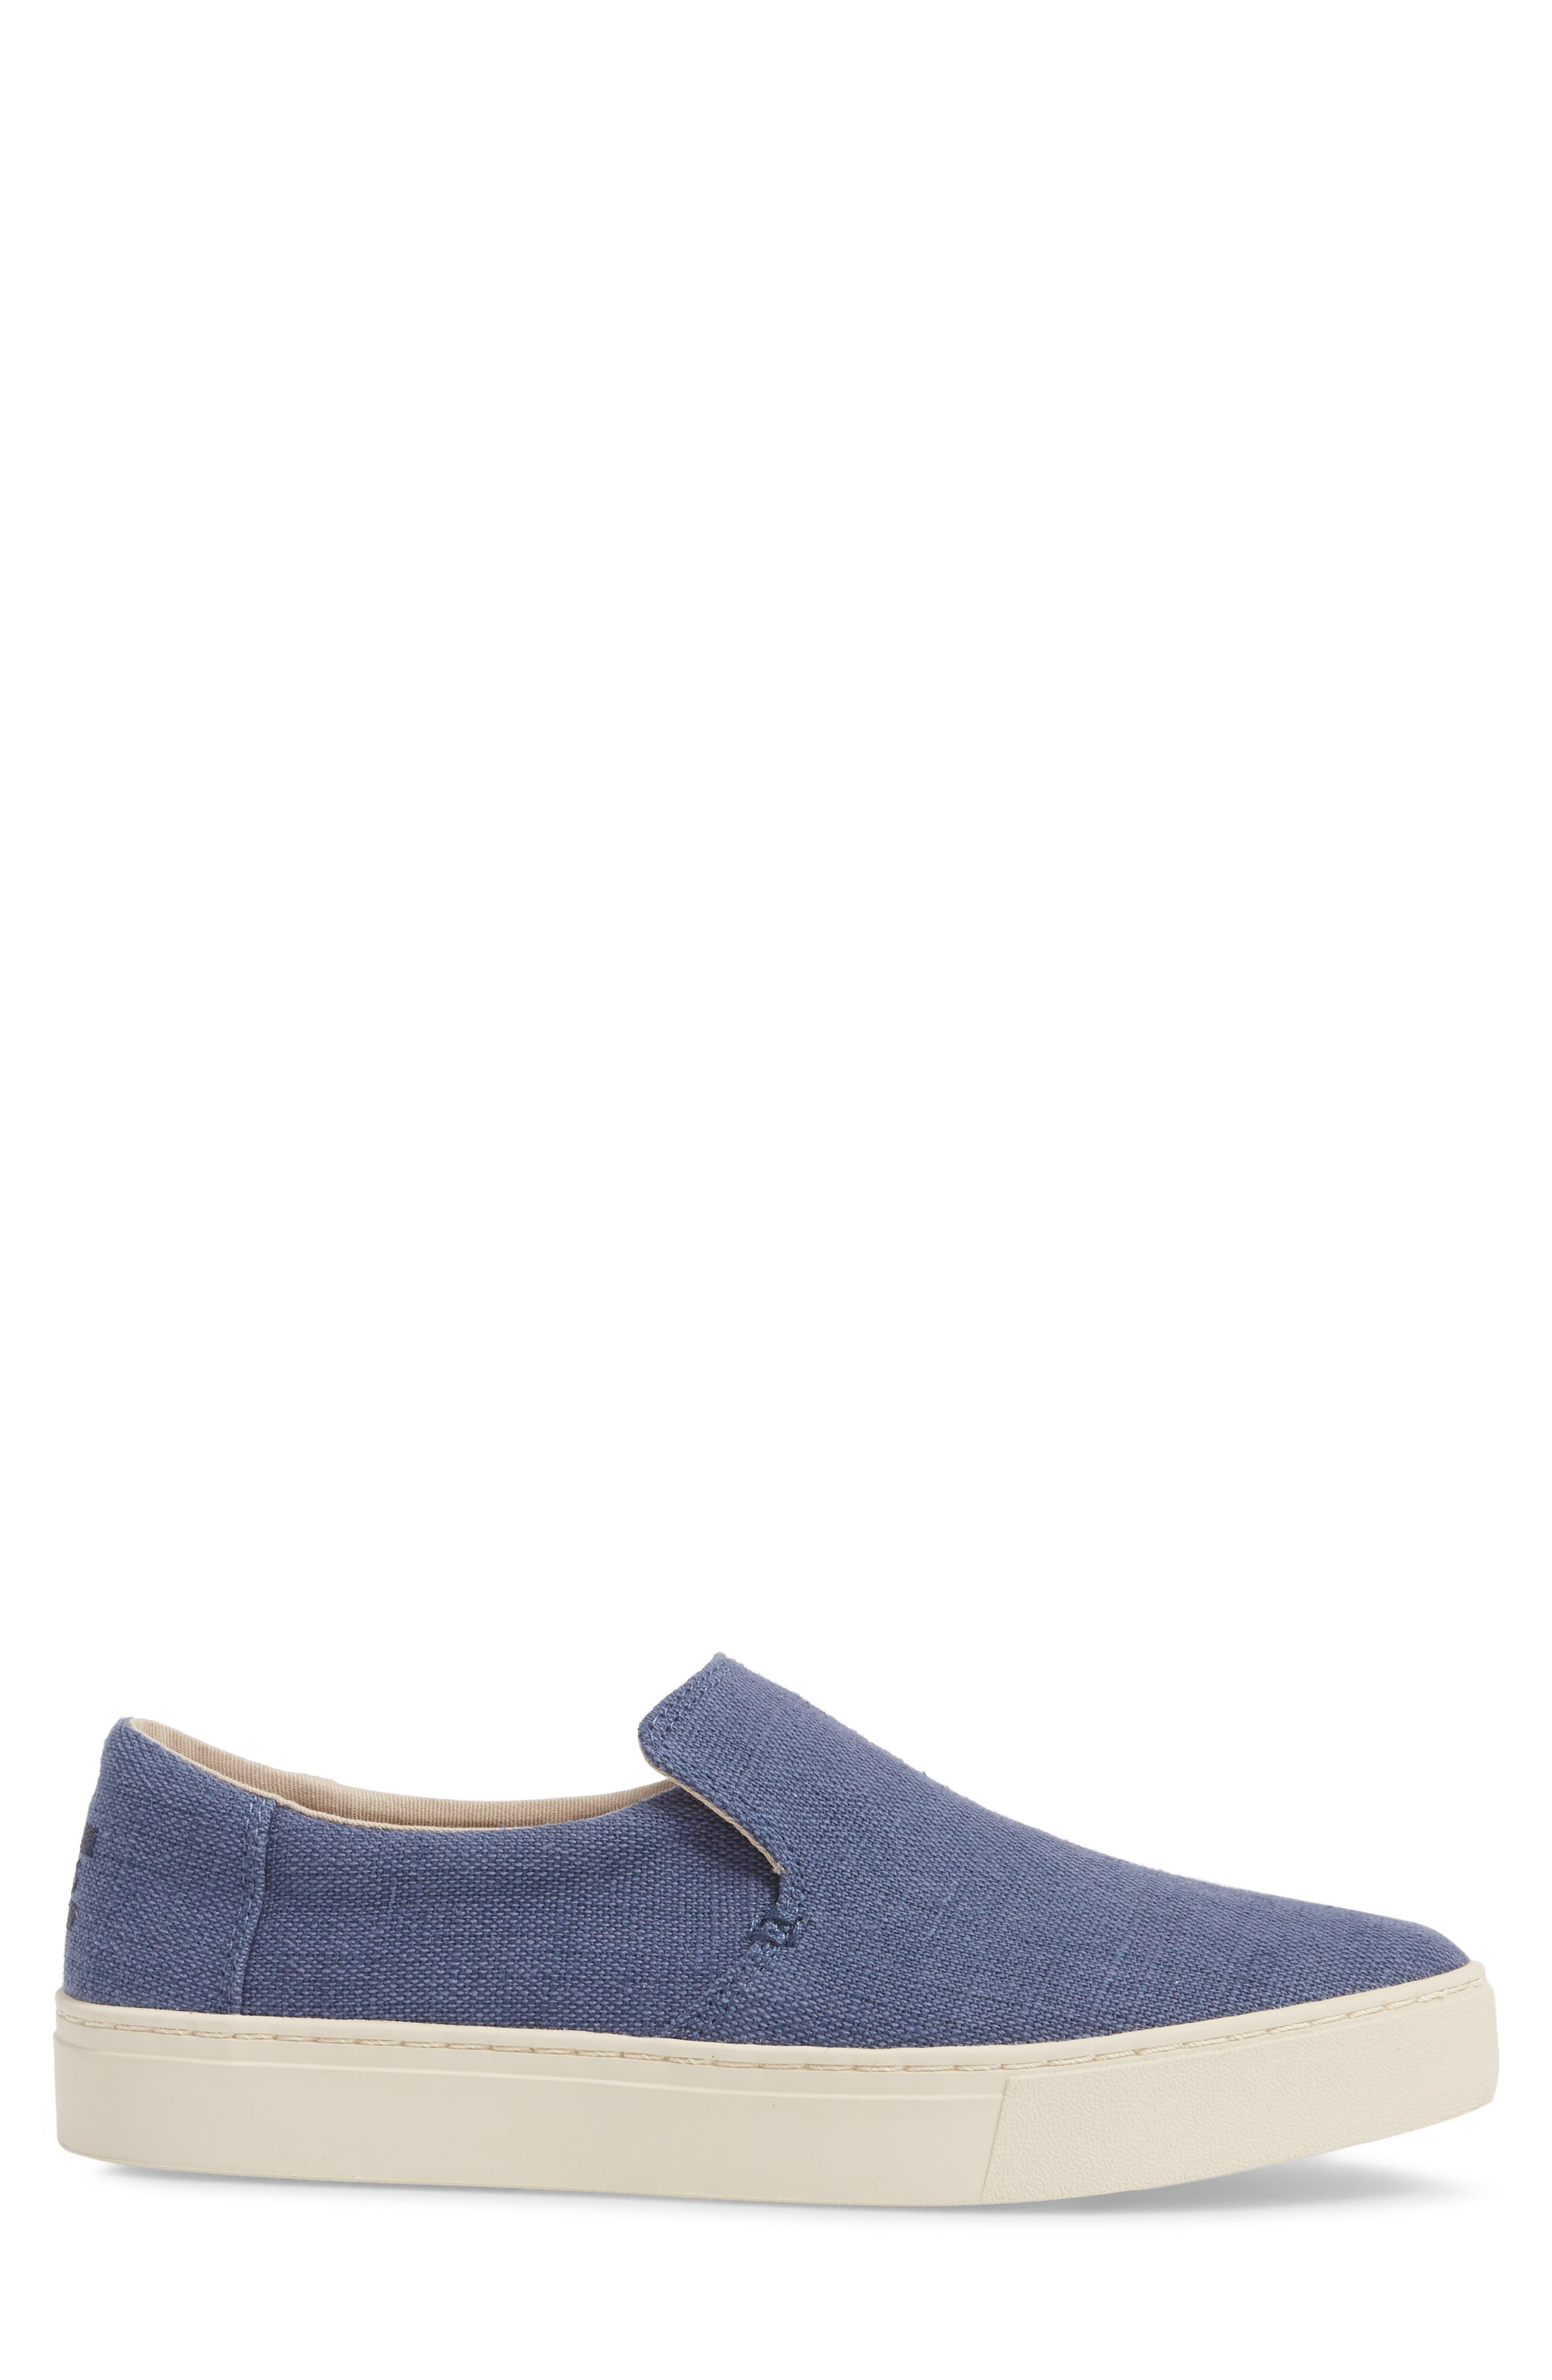 TOMS,                             Loma Slip-On Sneaker,                             Alternate thumbnail 3, color,                             CADET BLUE HERITAGE CANVAS